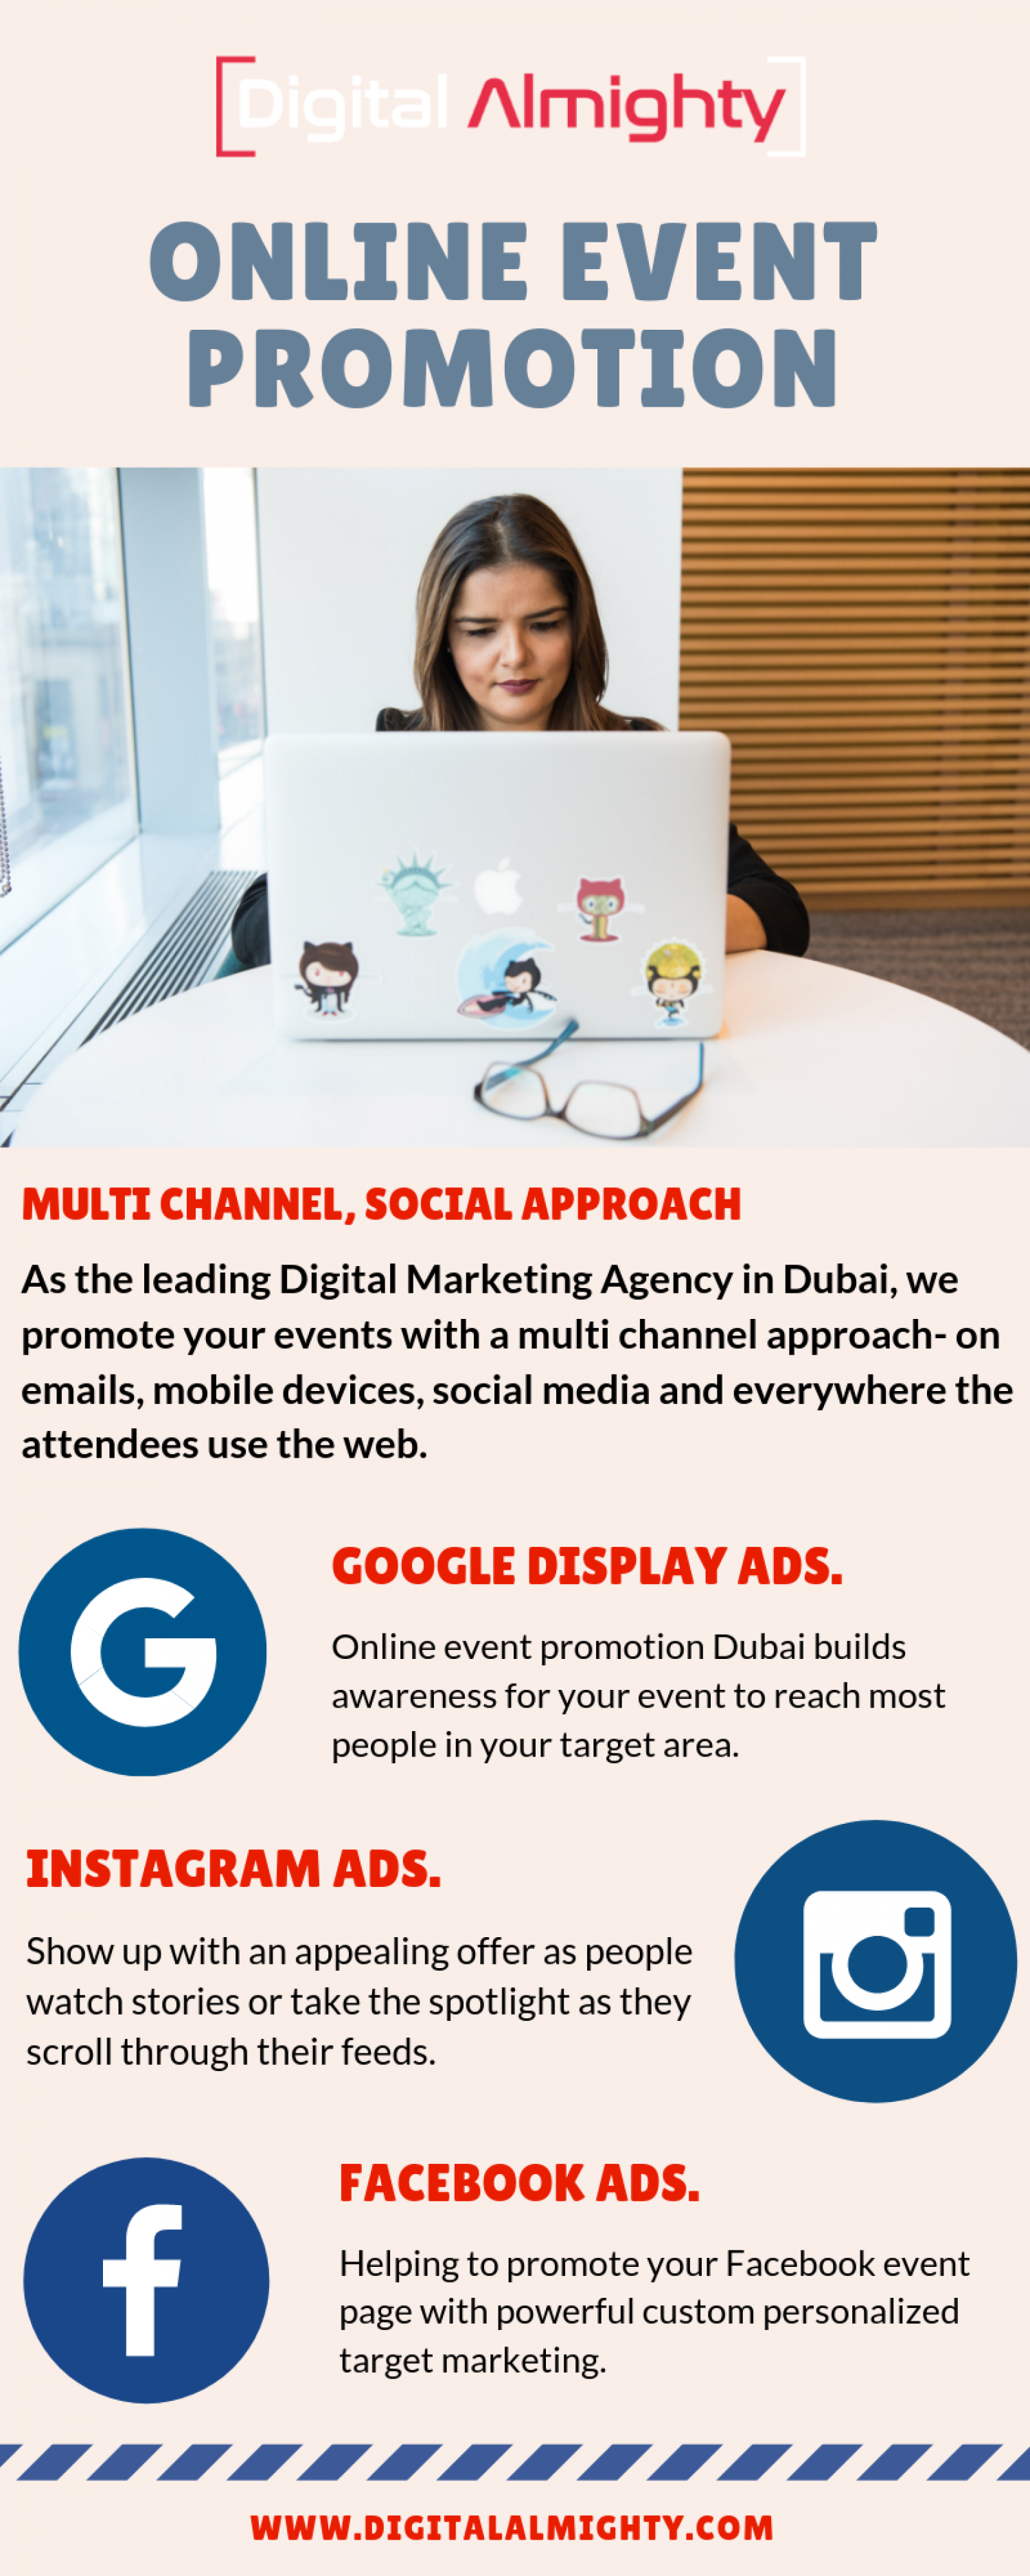 Online Event Promotion - Digital Almighty  Infographic